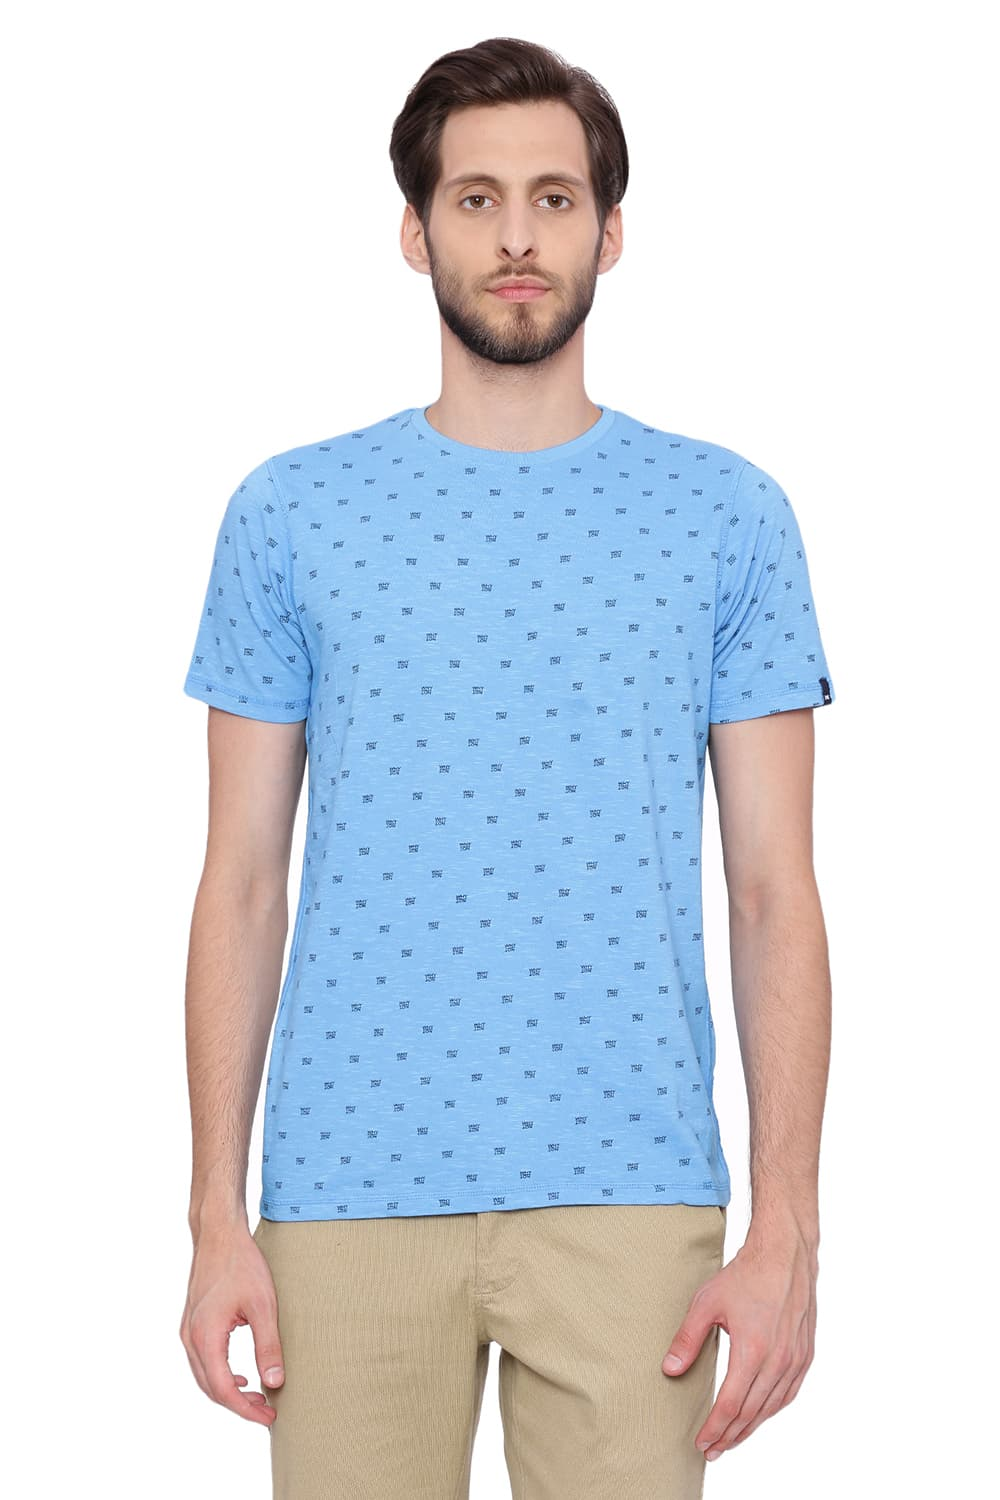 Basics   Basics Muscle Fit Ethereal Blue Printed Crew Neck T Shirt